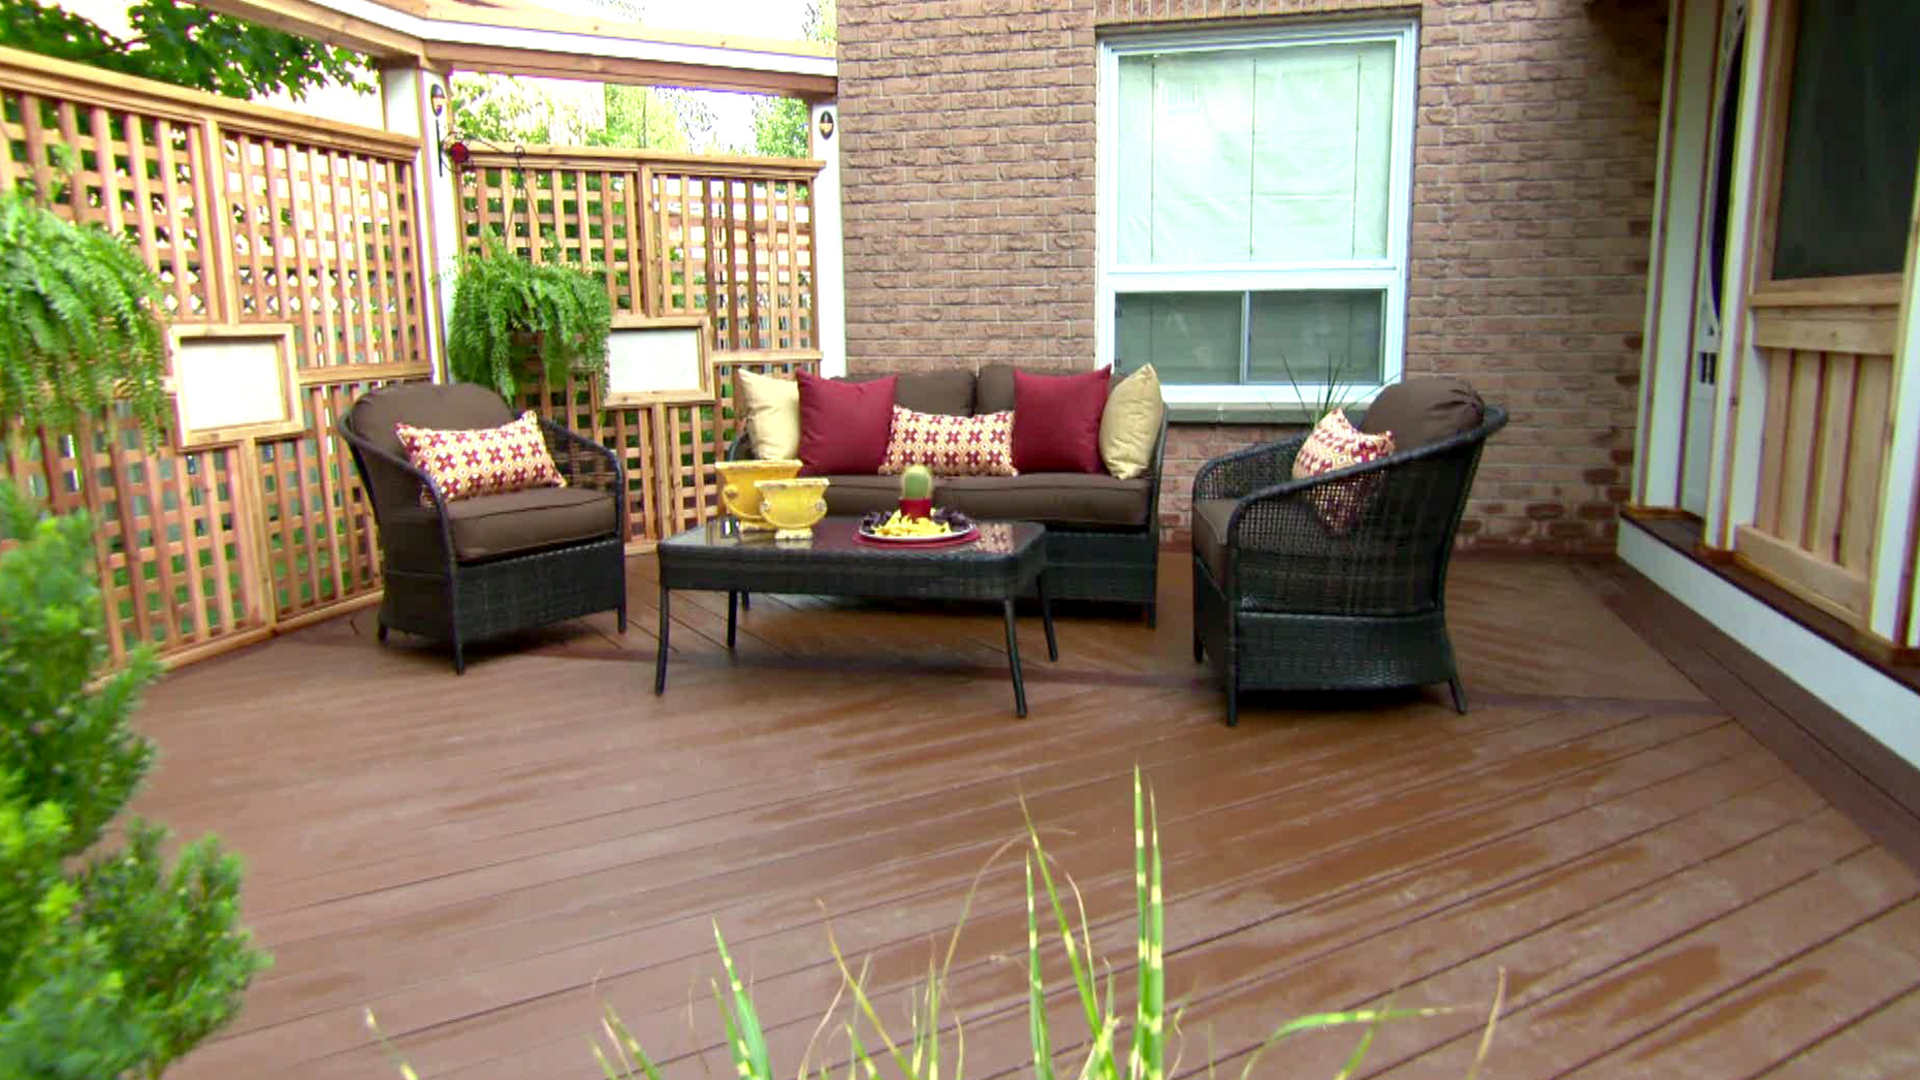 Porch Vs Deck Which Is The More Befitting For Your Home: Diy Decking Ideas For Before Next Spring Season